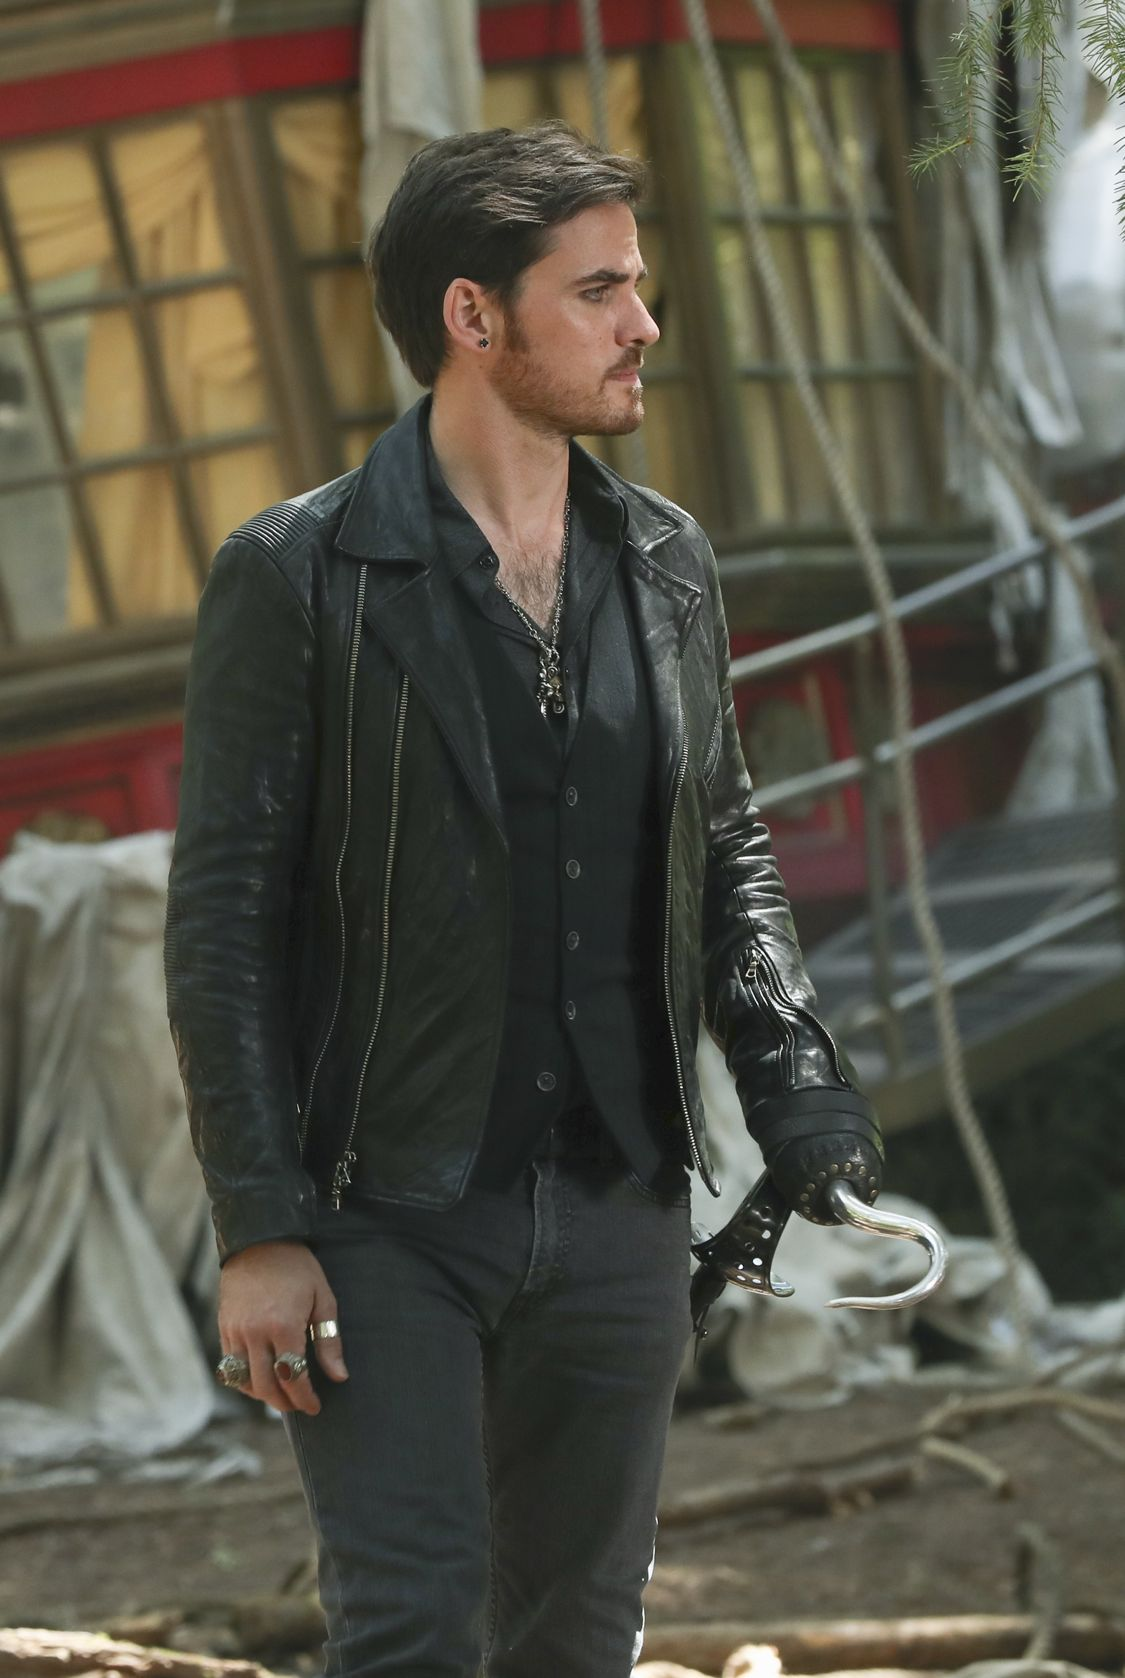 """ONCE UPON A TIME - """"The Savior"""" - As """"Once Upon a Time"""" returns to ABC for its sixth season, SUNDAY, SEPTEMBER 25 (8:00-9:00 p.m. EDT), on the ABC Television Network, so does its classic villain-the Evil Queen. (ABC/Jack Rowand) COLIN O'DONOGHUE"""